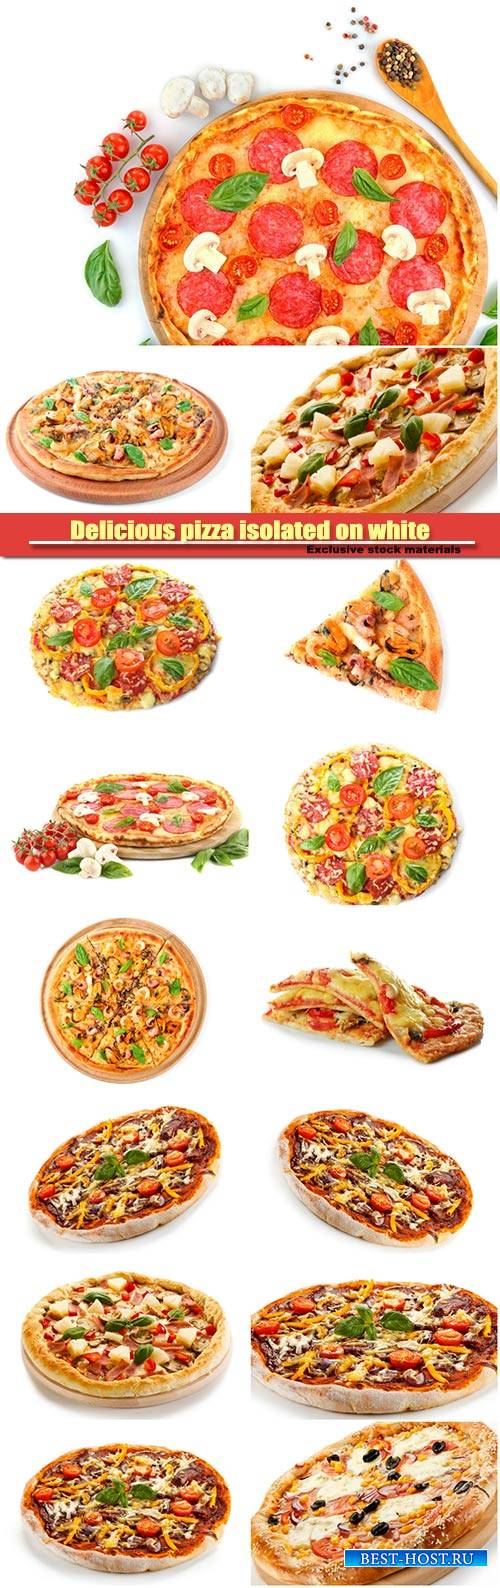 Delicious pizza isolated on white background